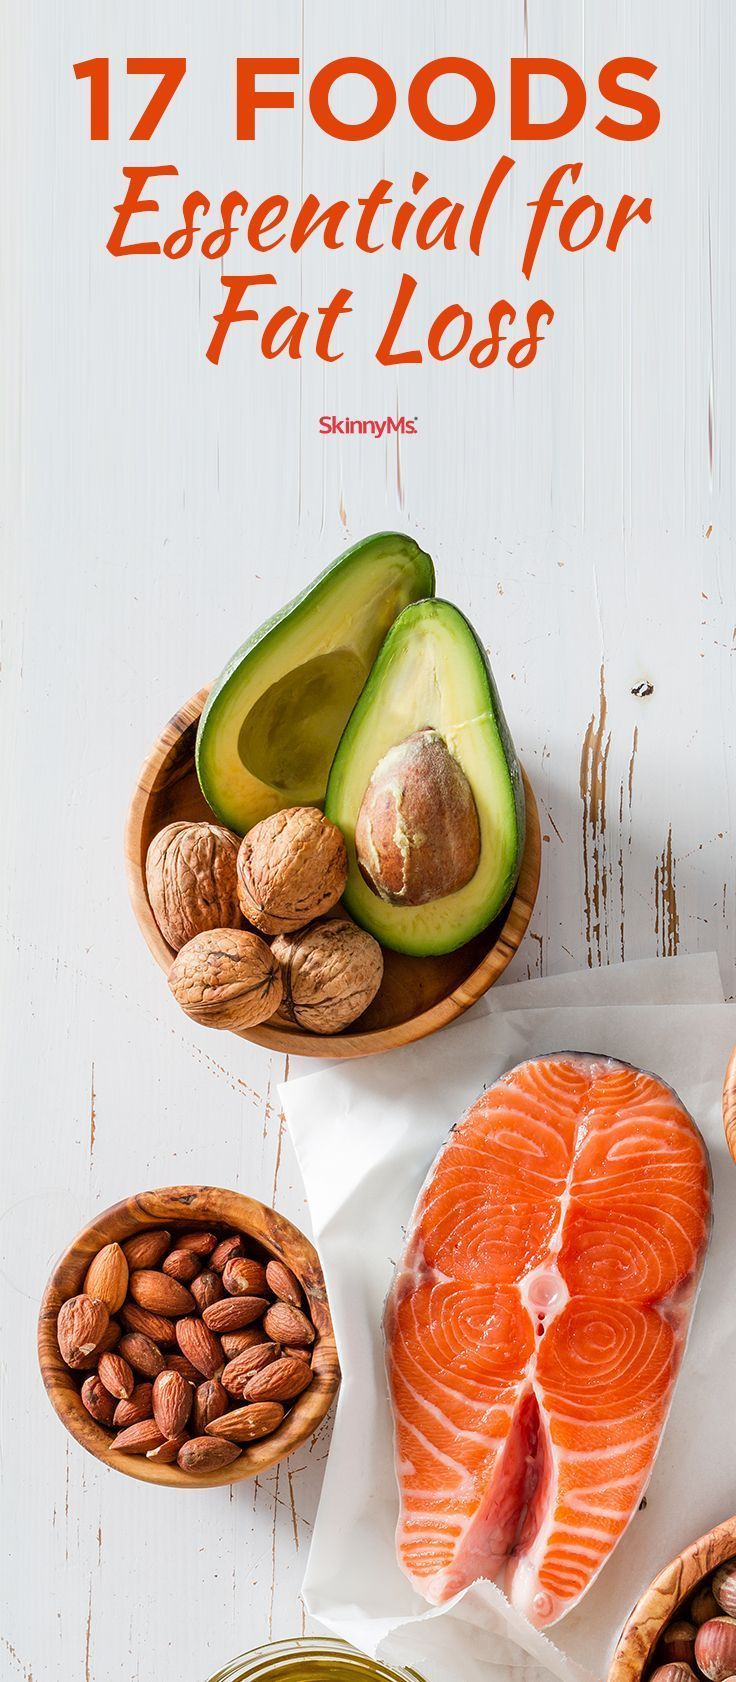 17 Foods Essential For Fat Loss